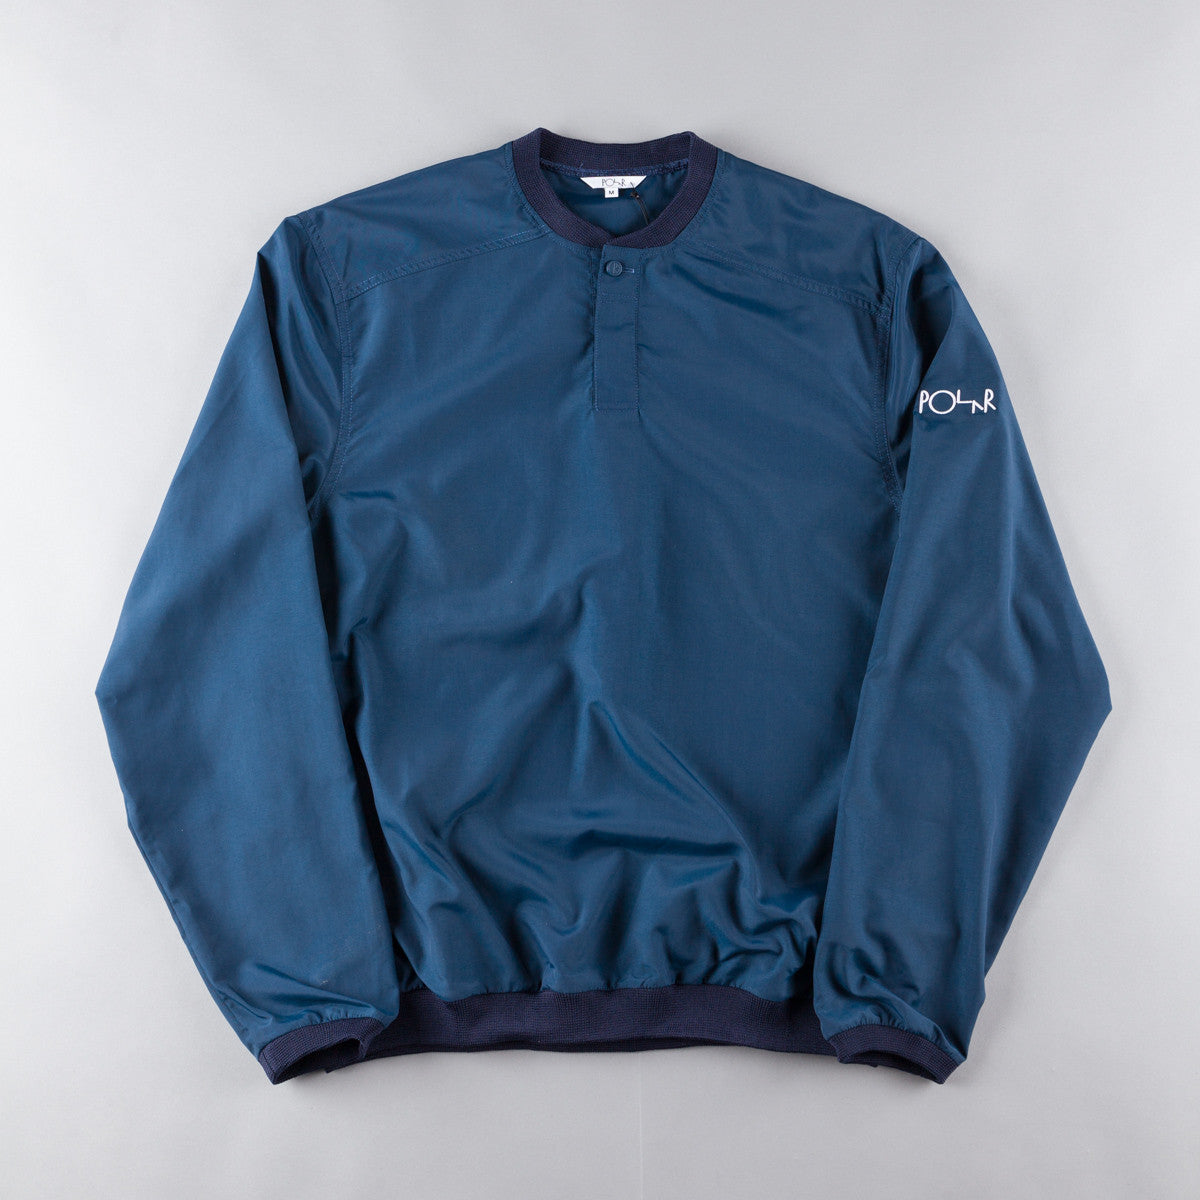 Polar Golf Club Pullover Sweatshirt - Navy